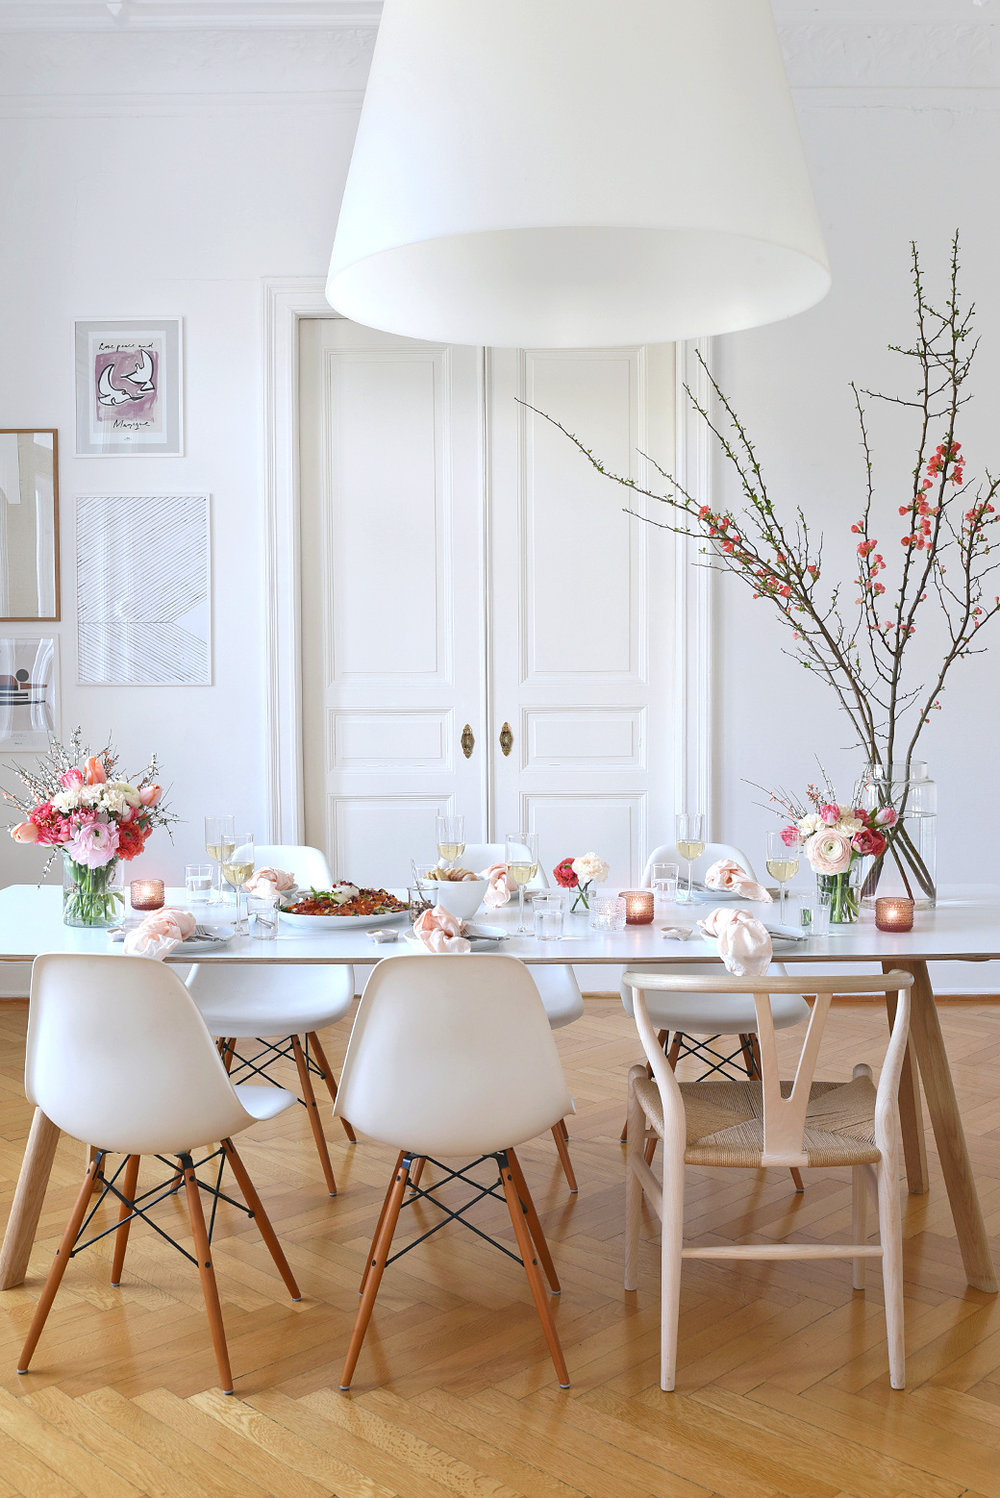 March+Dinner+Party+Inspiration+With+Pale+Salmon+%2B+Fresh+Flowers